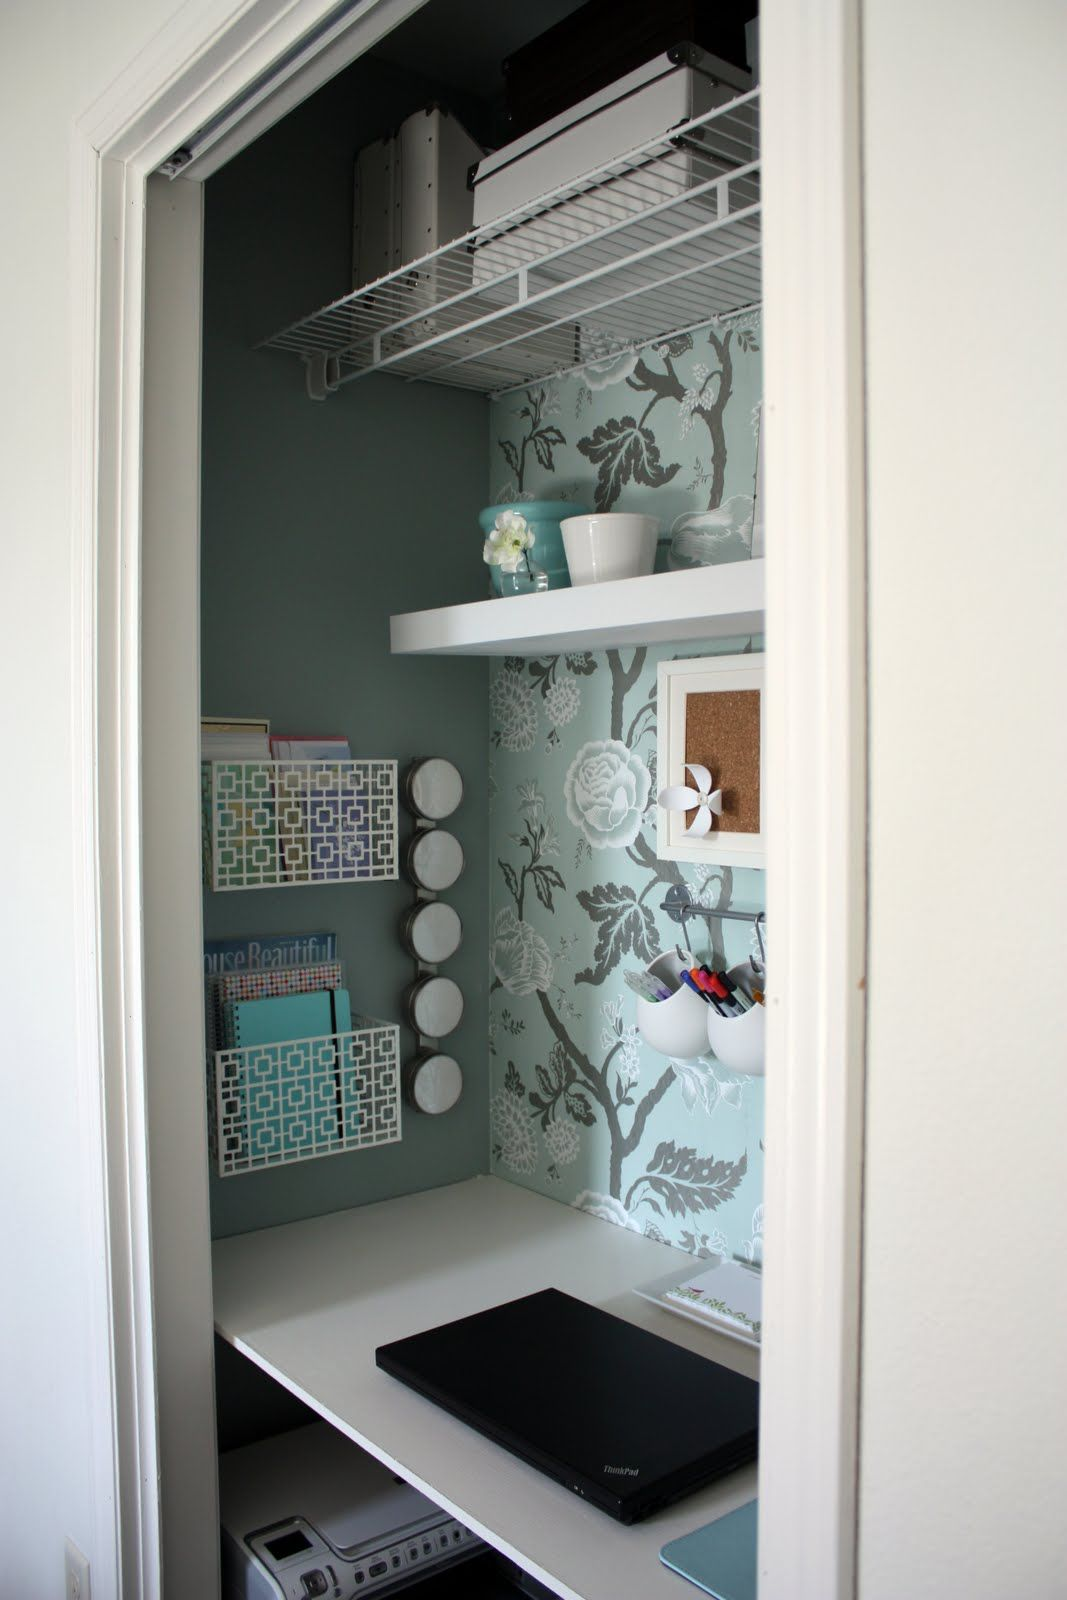 Remove The Door To The Inconvenient Living Room Closet And Make It Into A Office Closet Home Office Space Closet Desk Closet Office